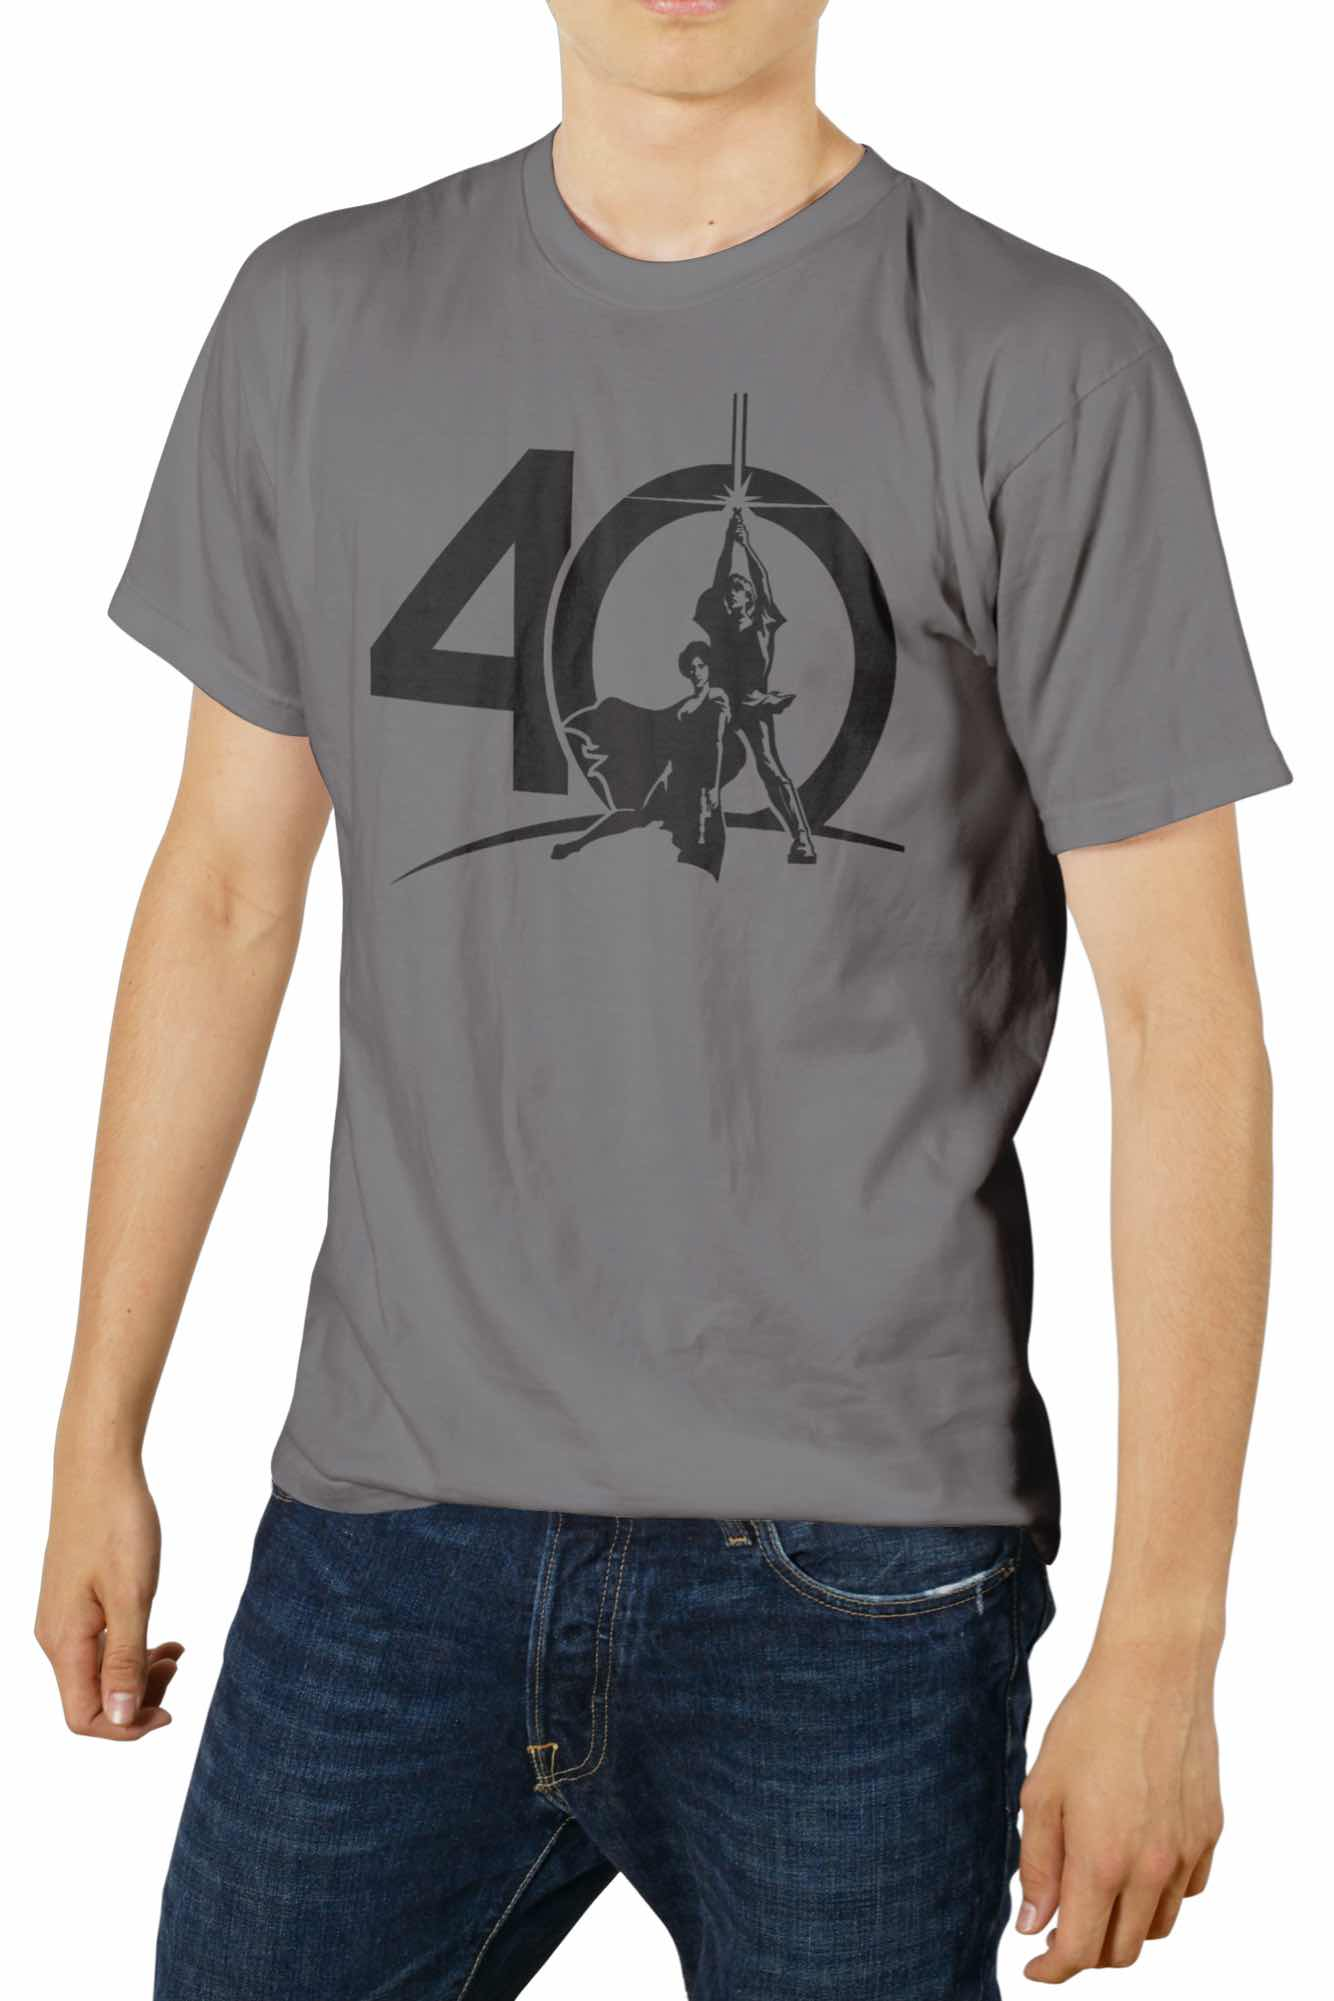 O.FLASH - 40 ANIVERSARIO CAMISETA GRIS VHS CHICO T-XL STAR WARS